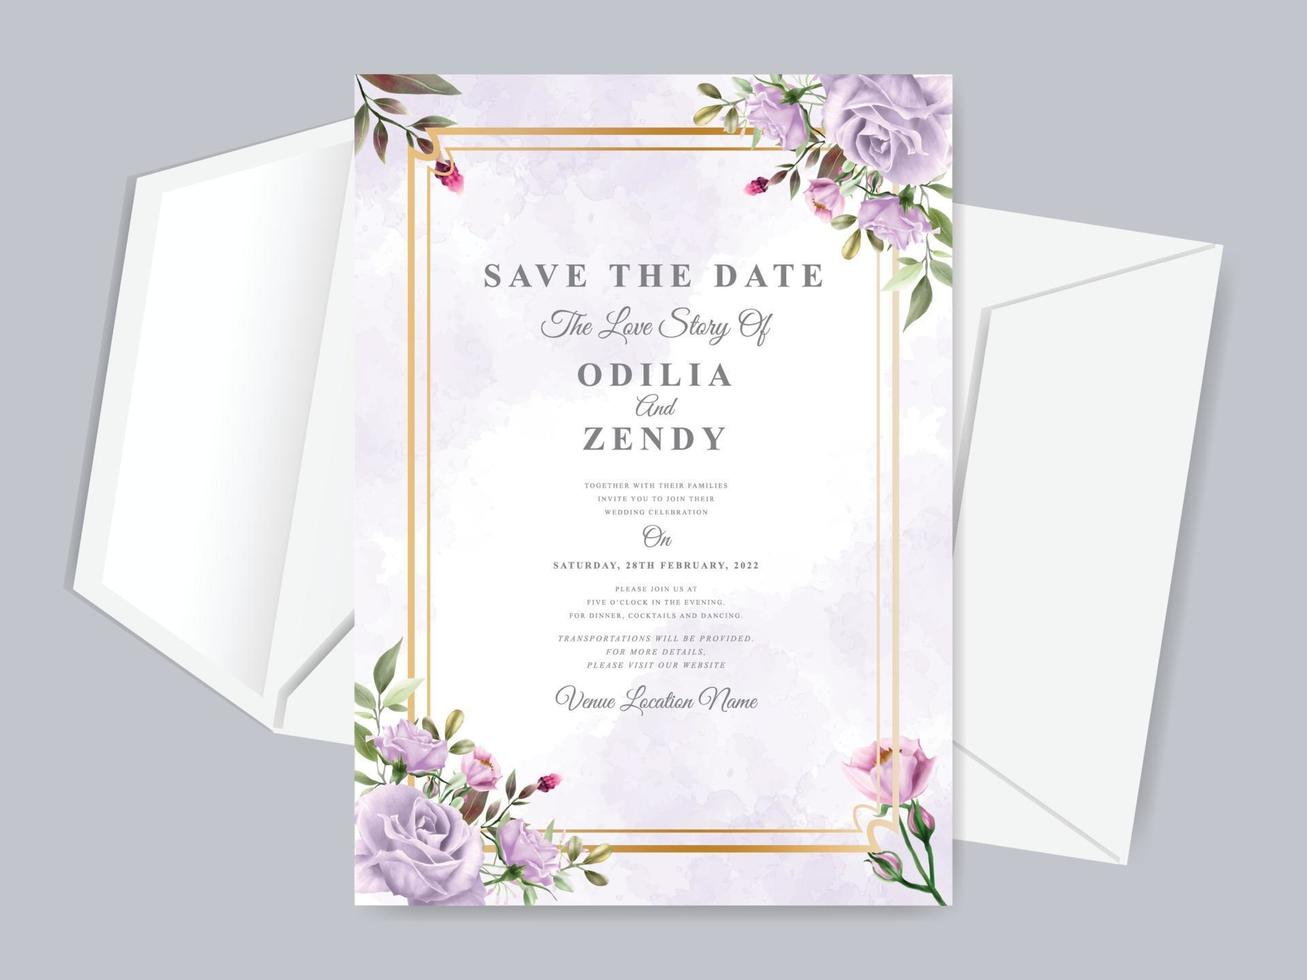 Wedding invitation save the date card template vector